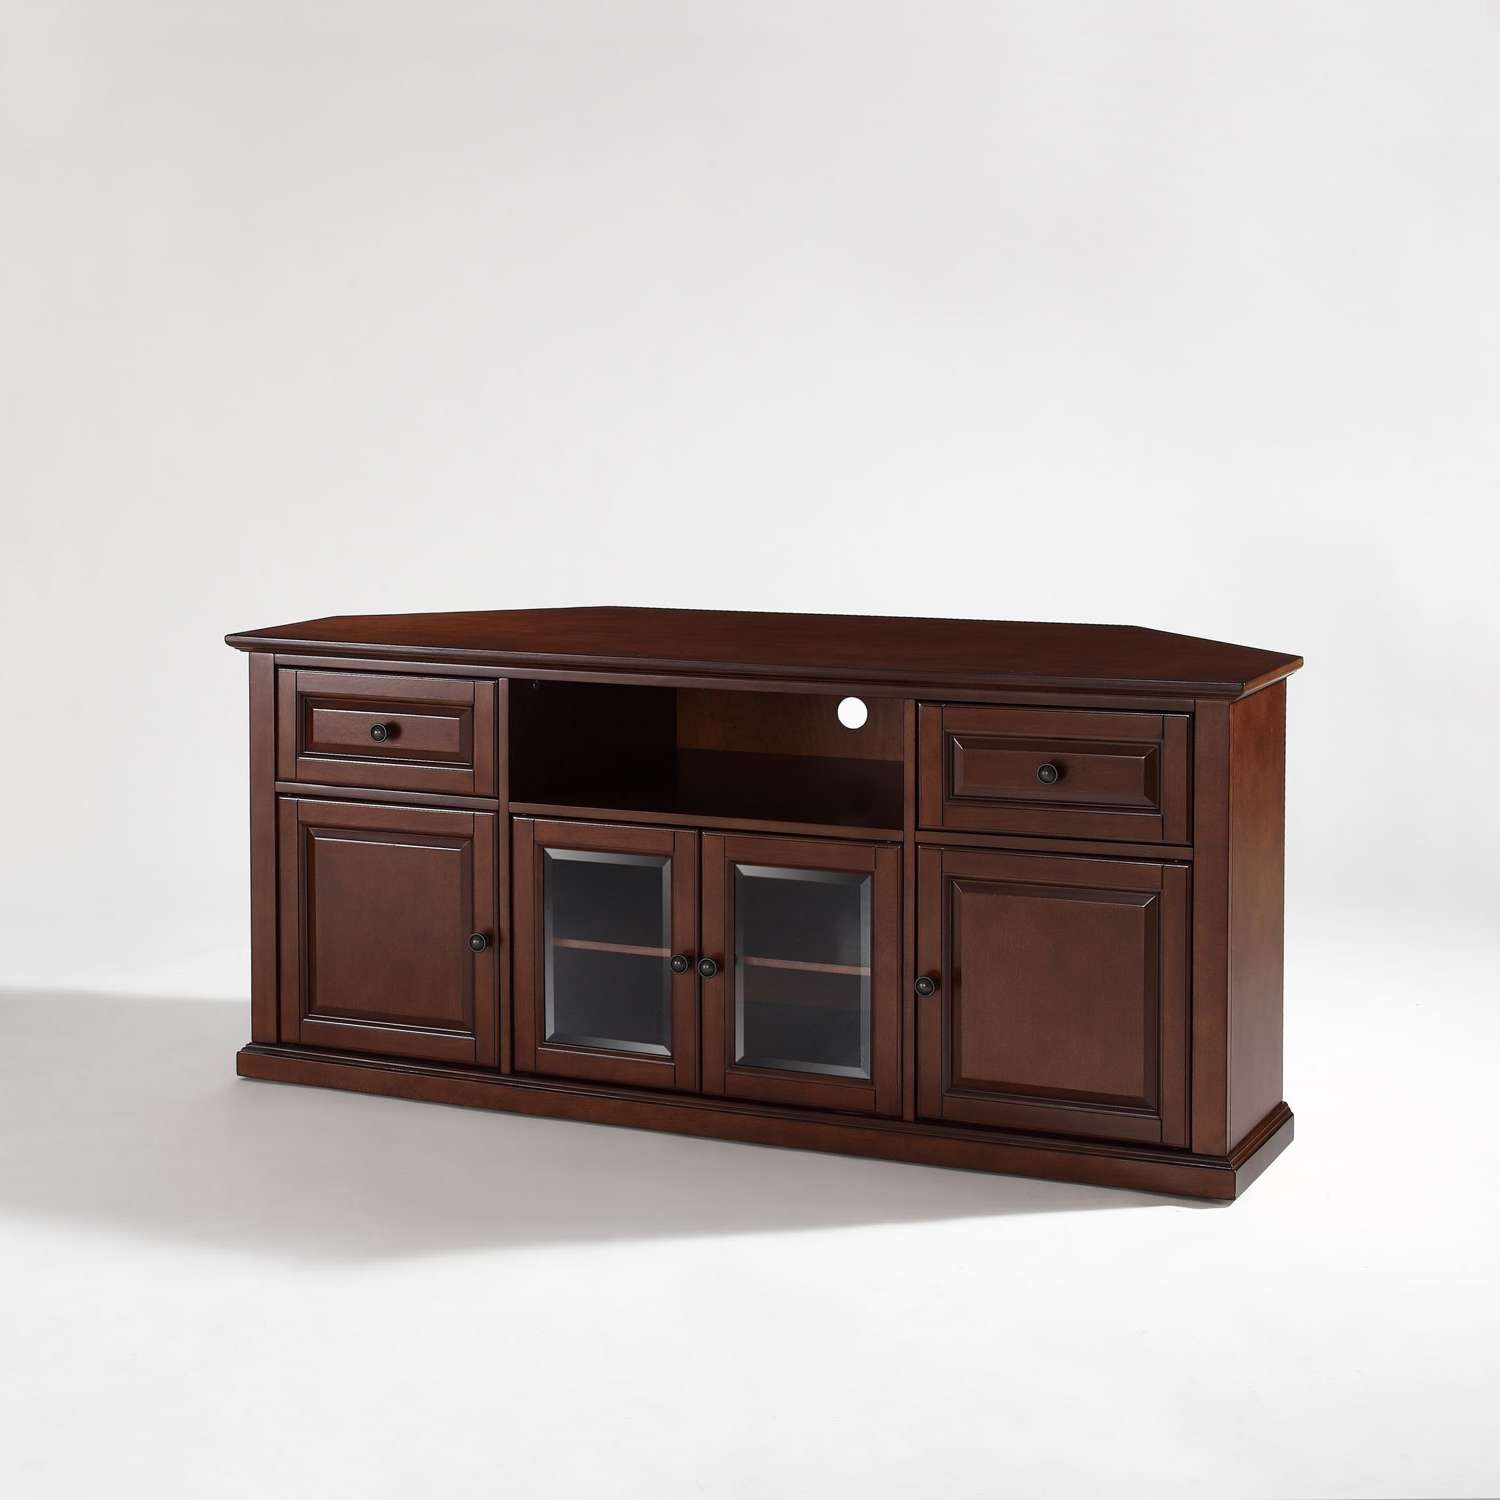 60 Inch Corner Tv Stand In Vintage Mahogany Crosley Furniture Inside Cherry Wood Tv Stands (View 1 of 15)